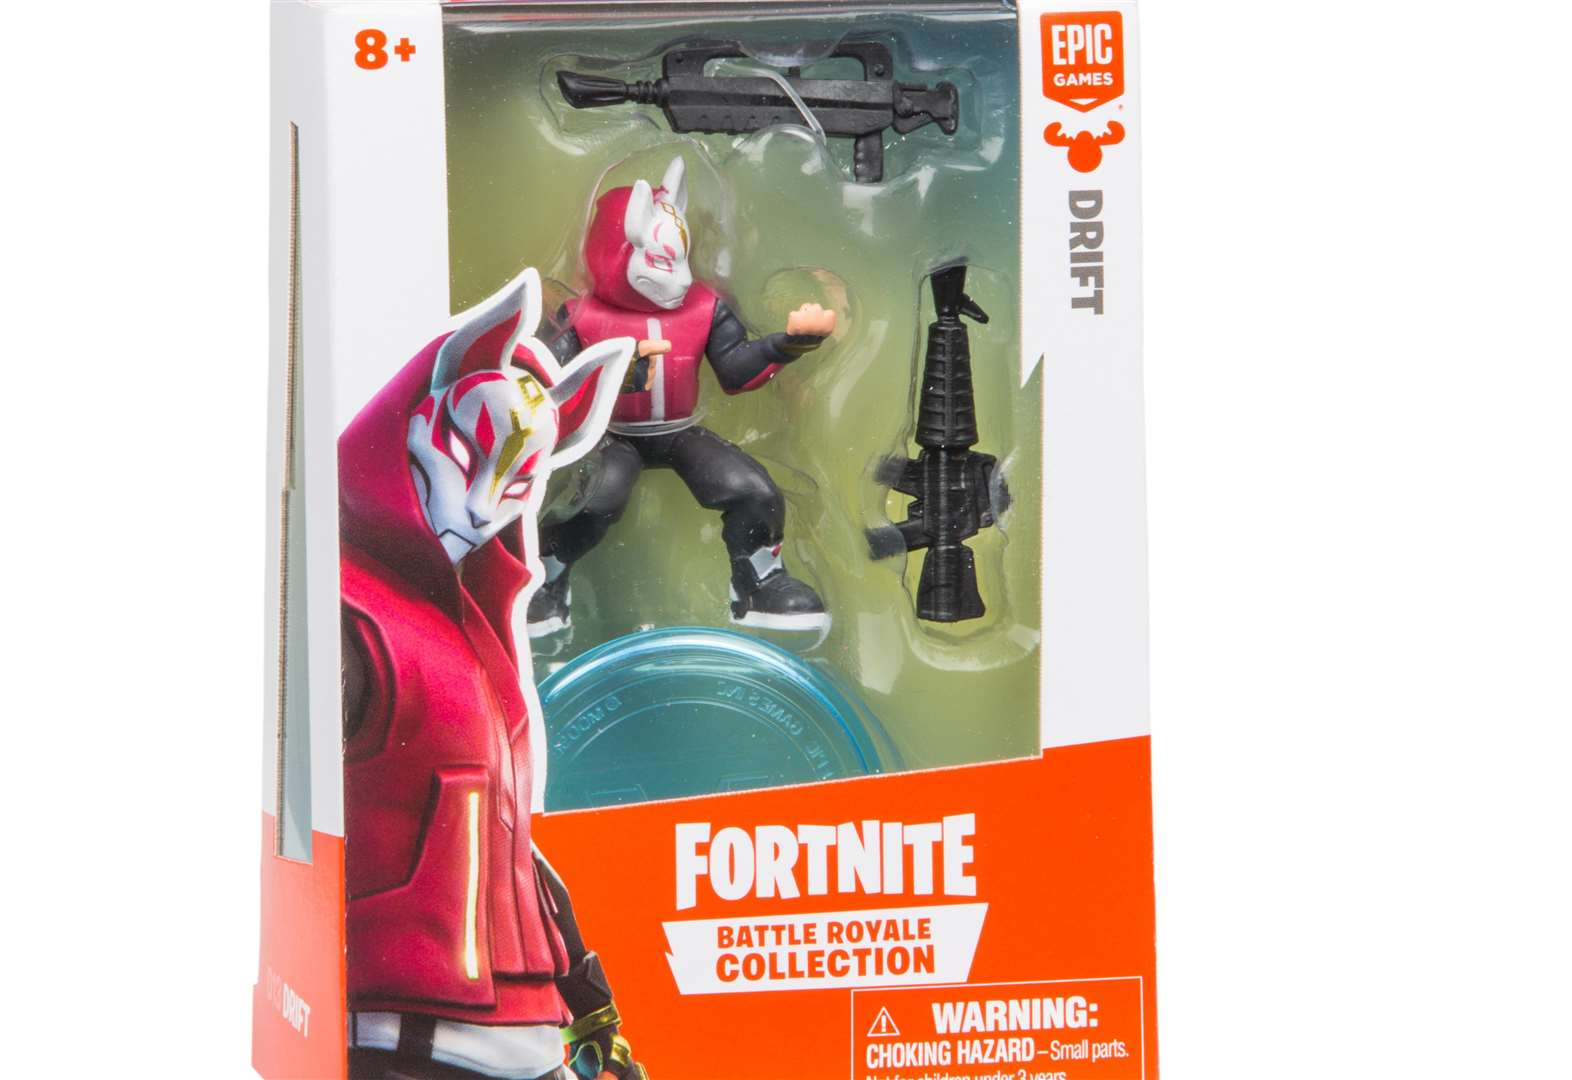 New Fortnite Battle Royale Collection Collectable Toys Go On